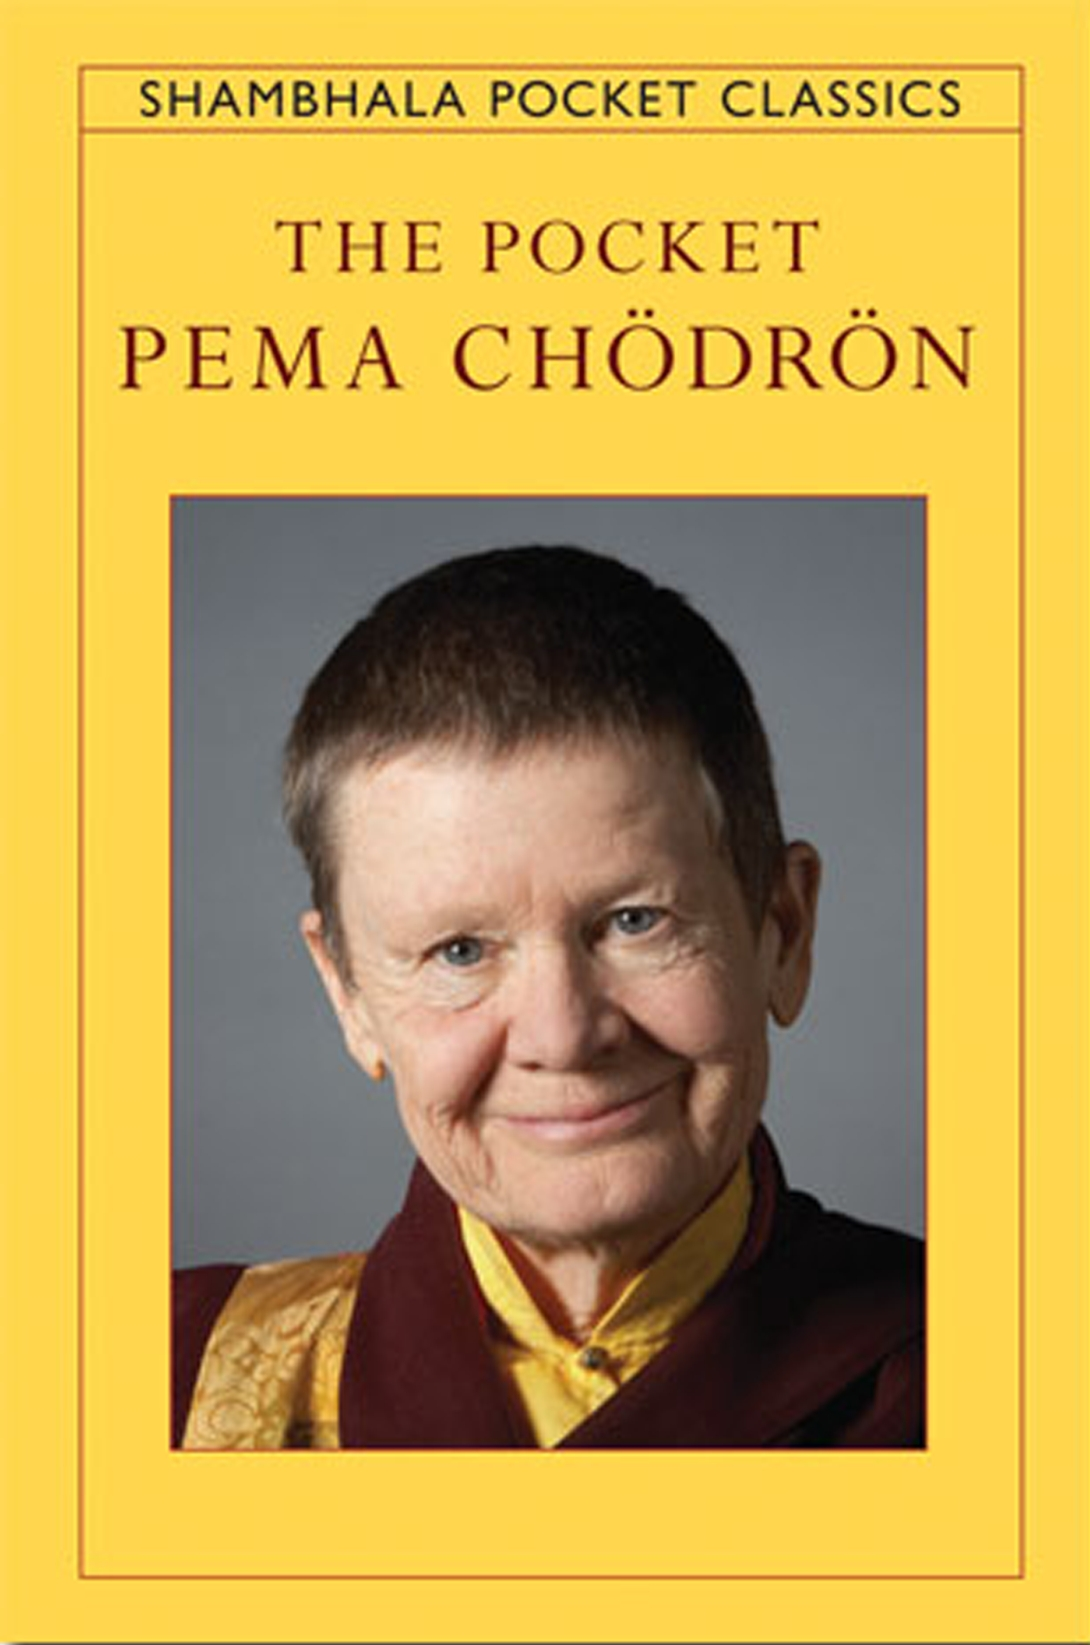 The Pocket Pema Chodron by Pema Chodron, ISBN: 9781590306512